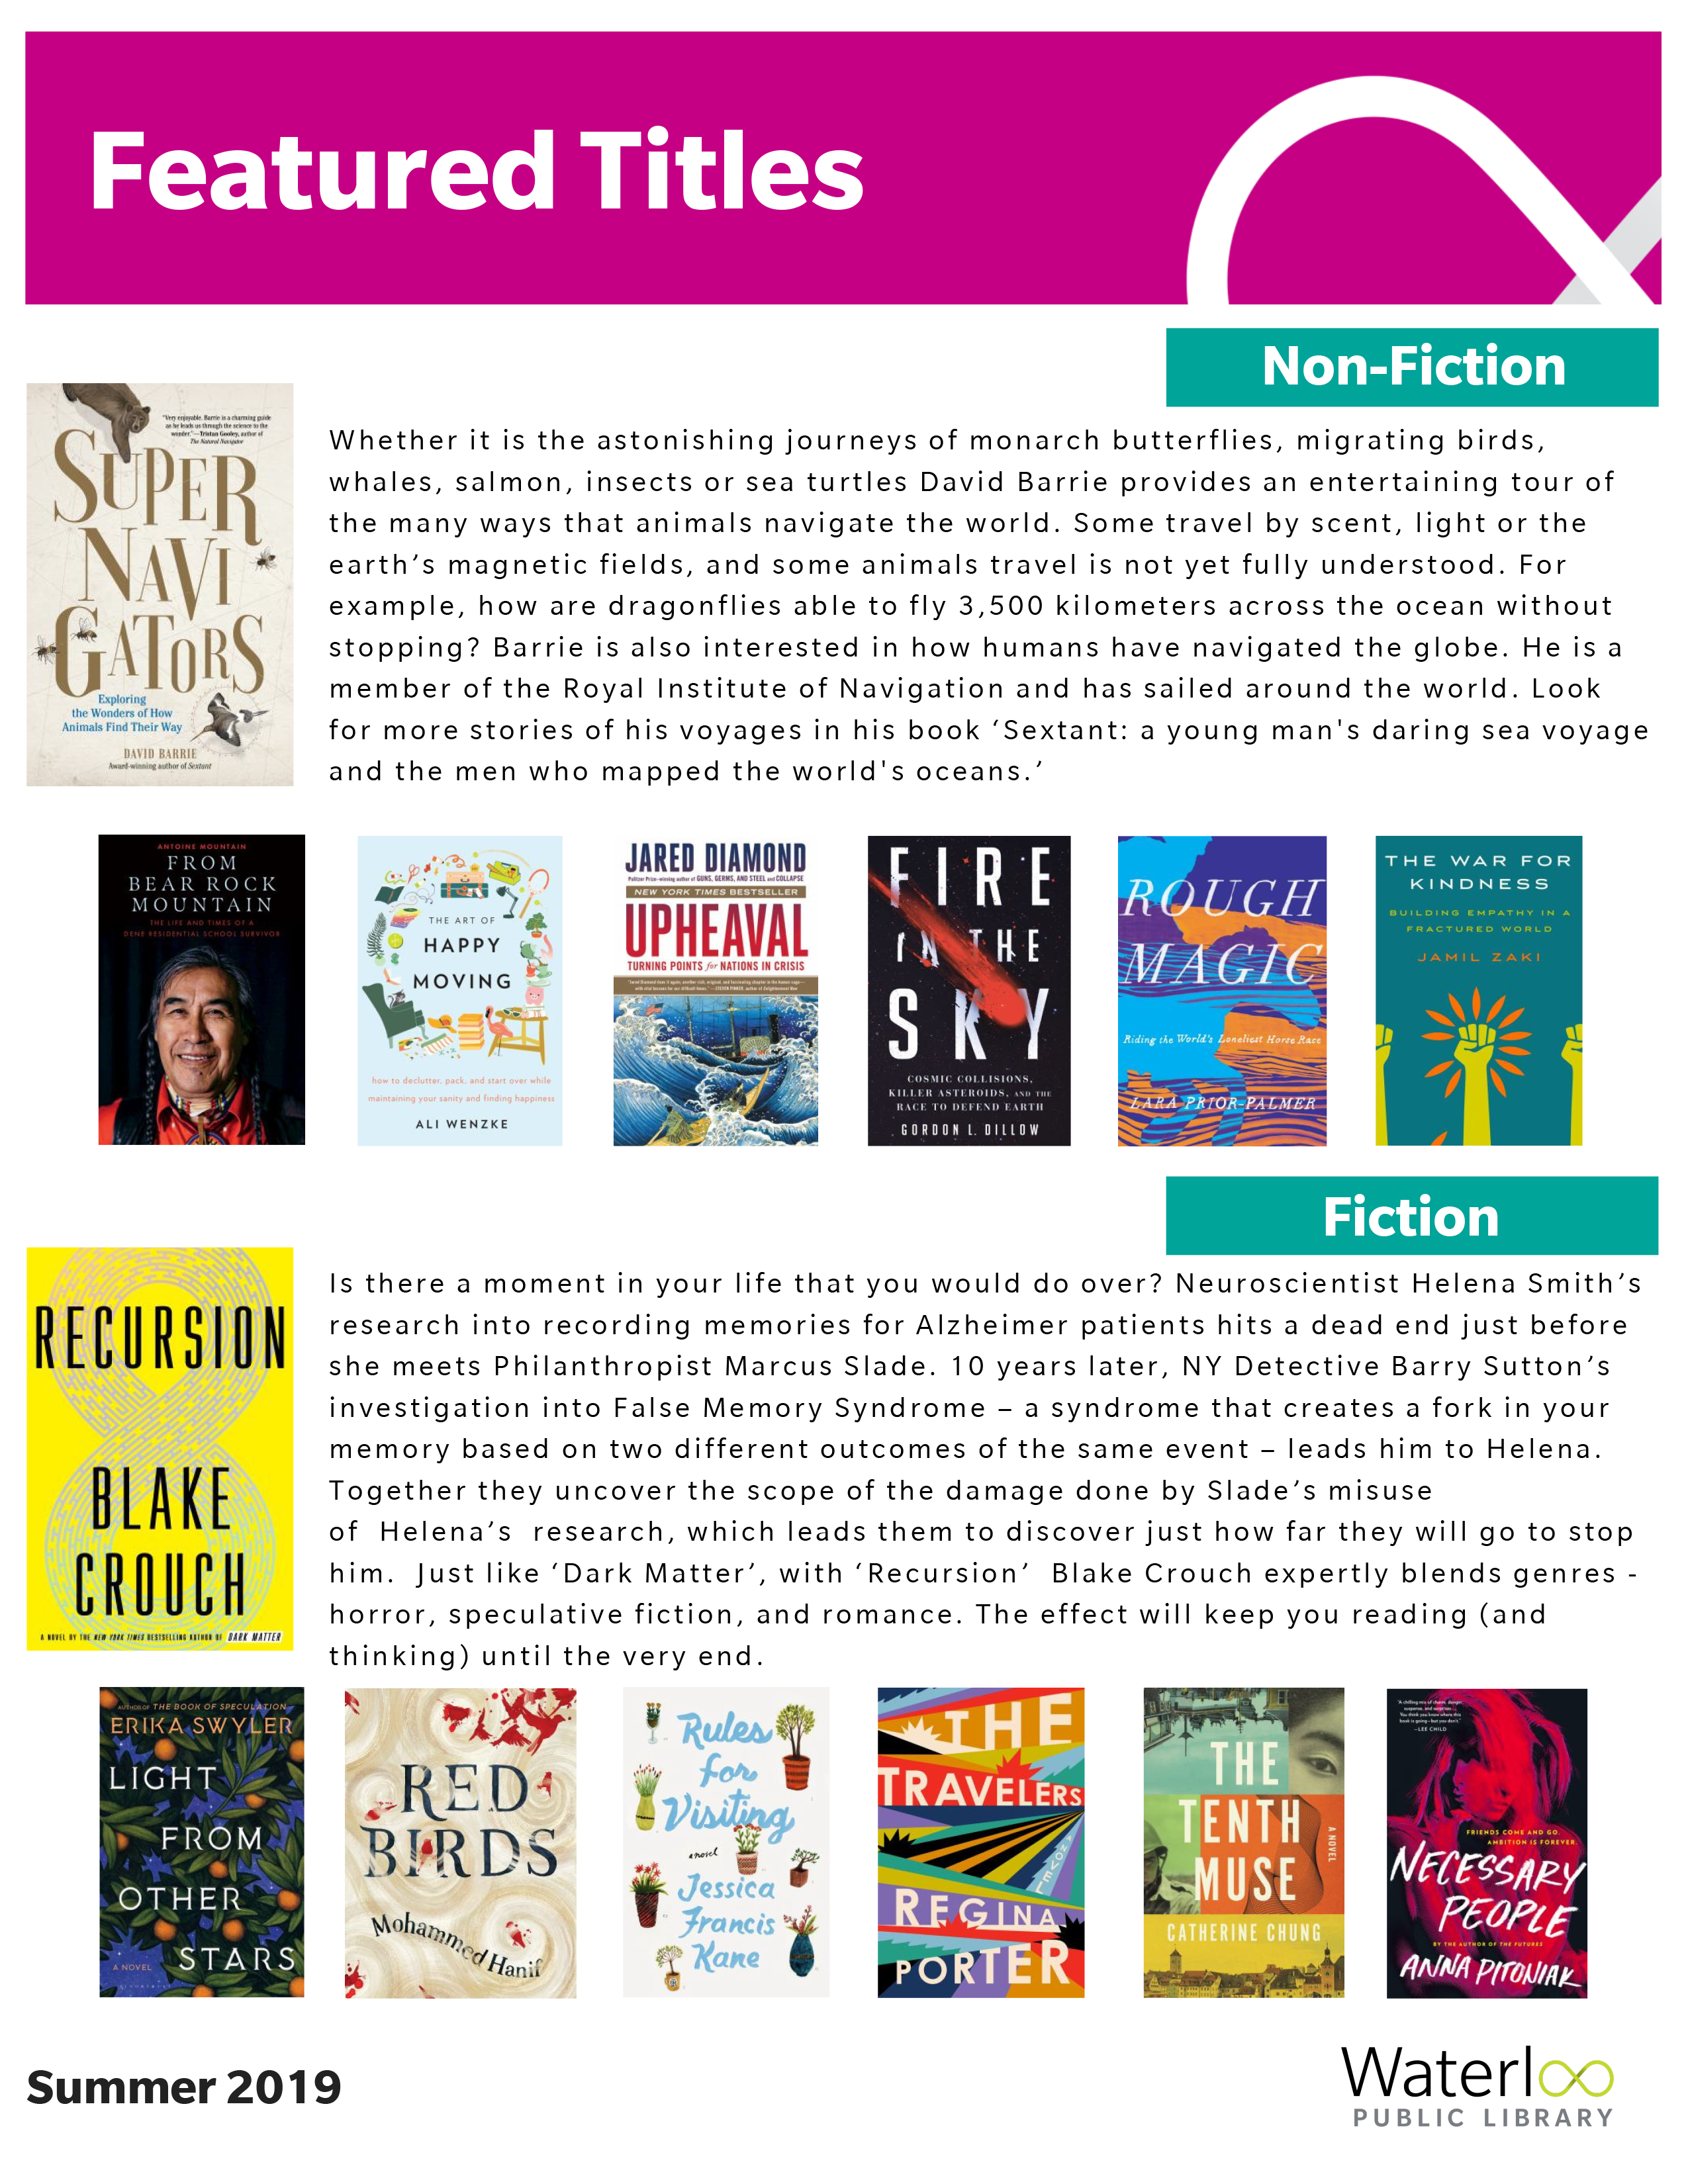 Featured Titles for Adults - Summer 2019